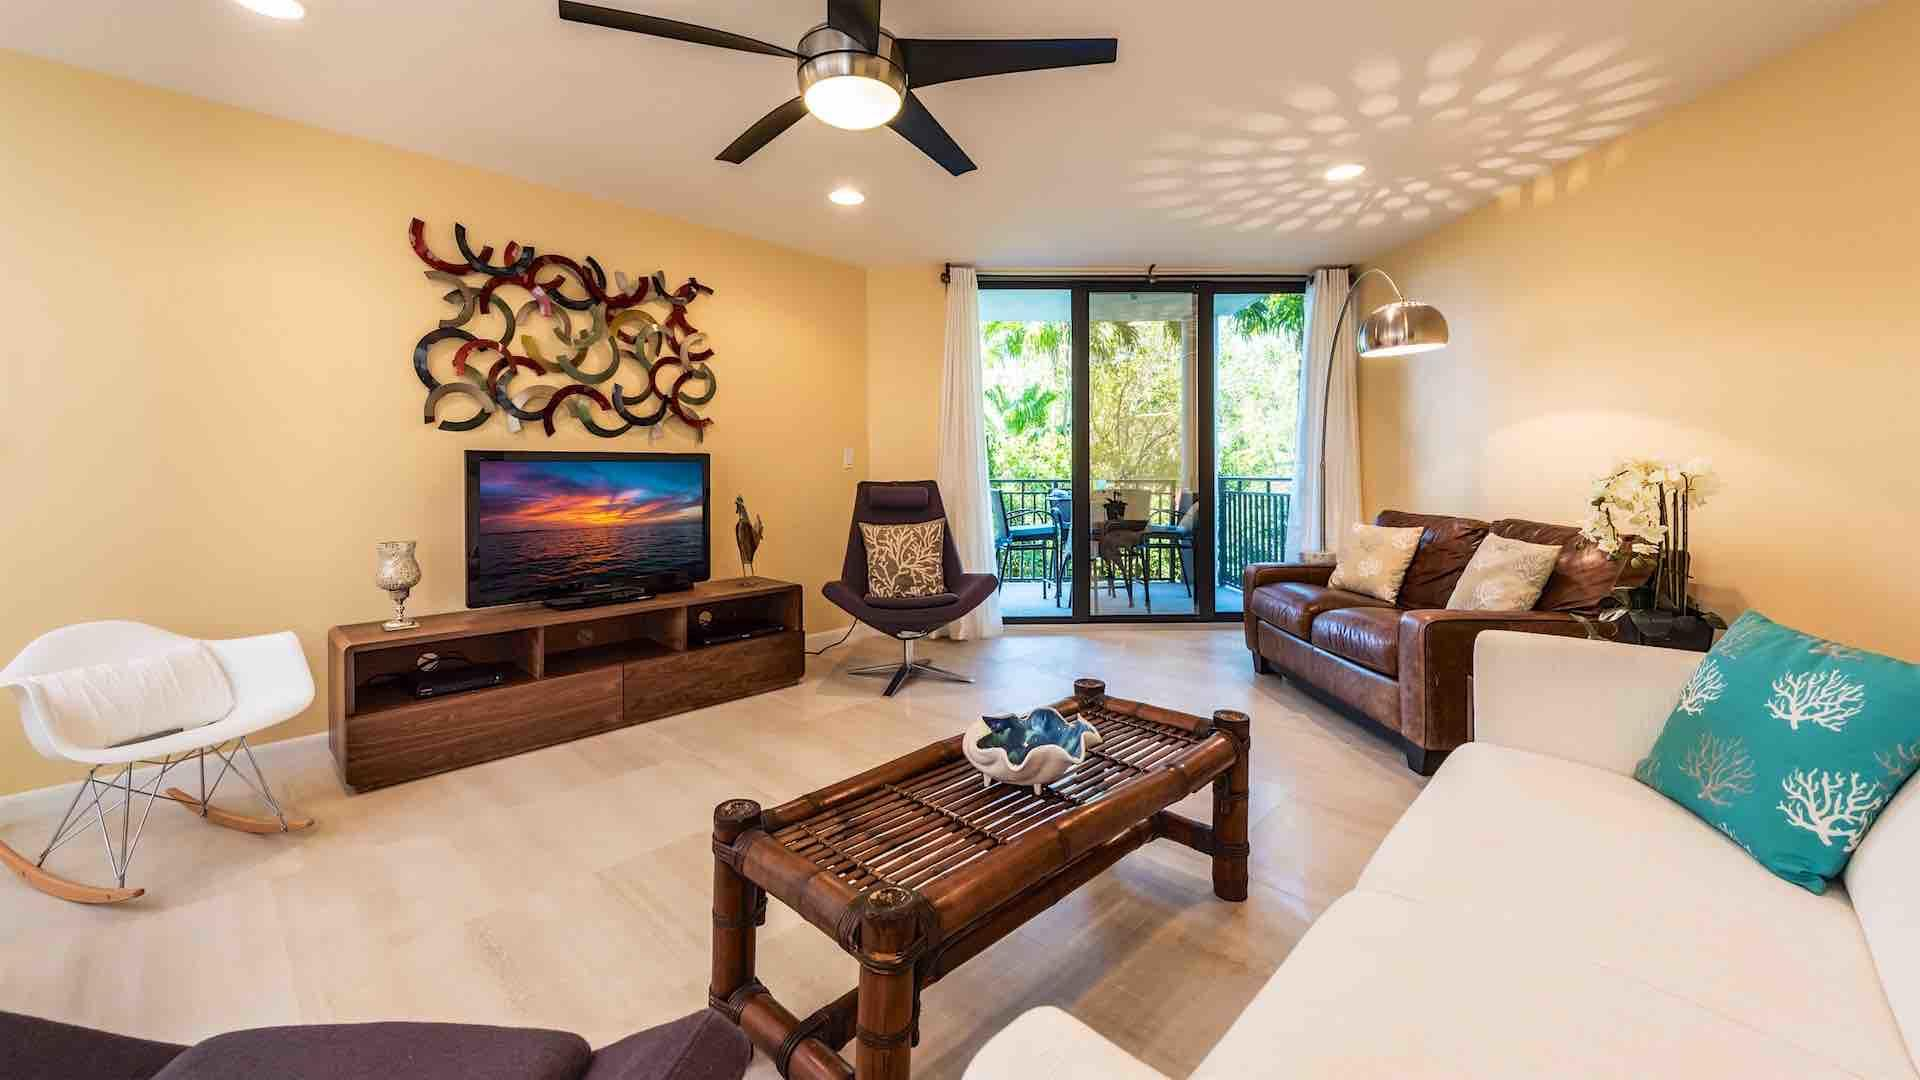 The living room has a large flat screen TV and plenty of comfortable seating...